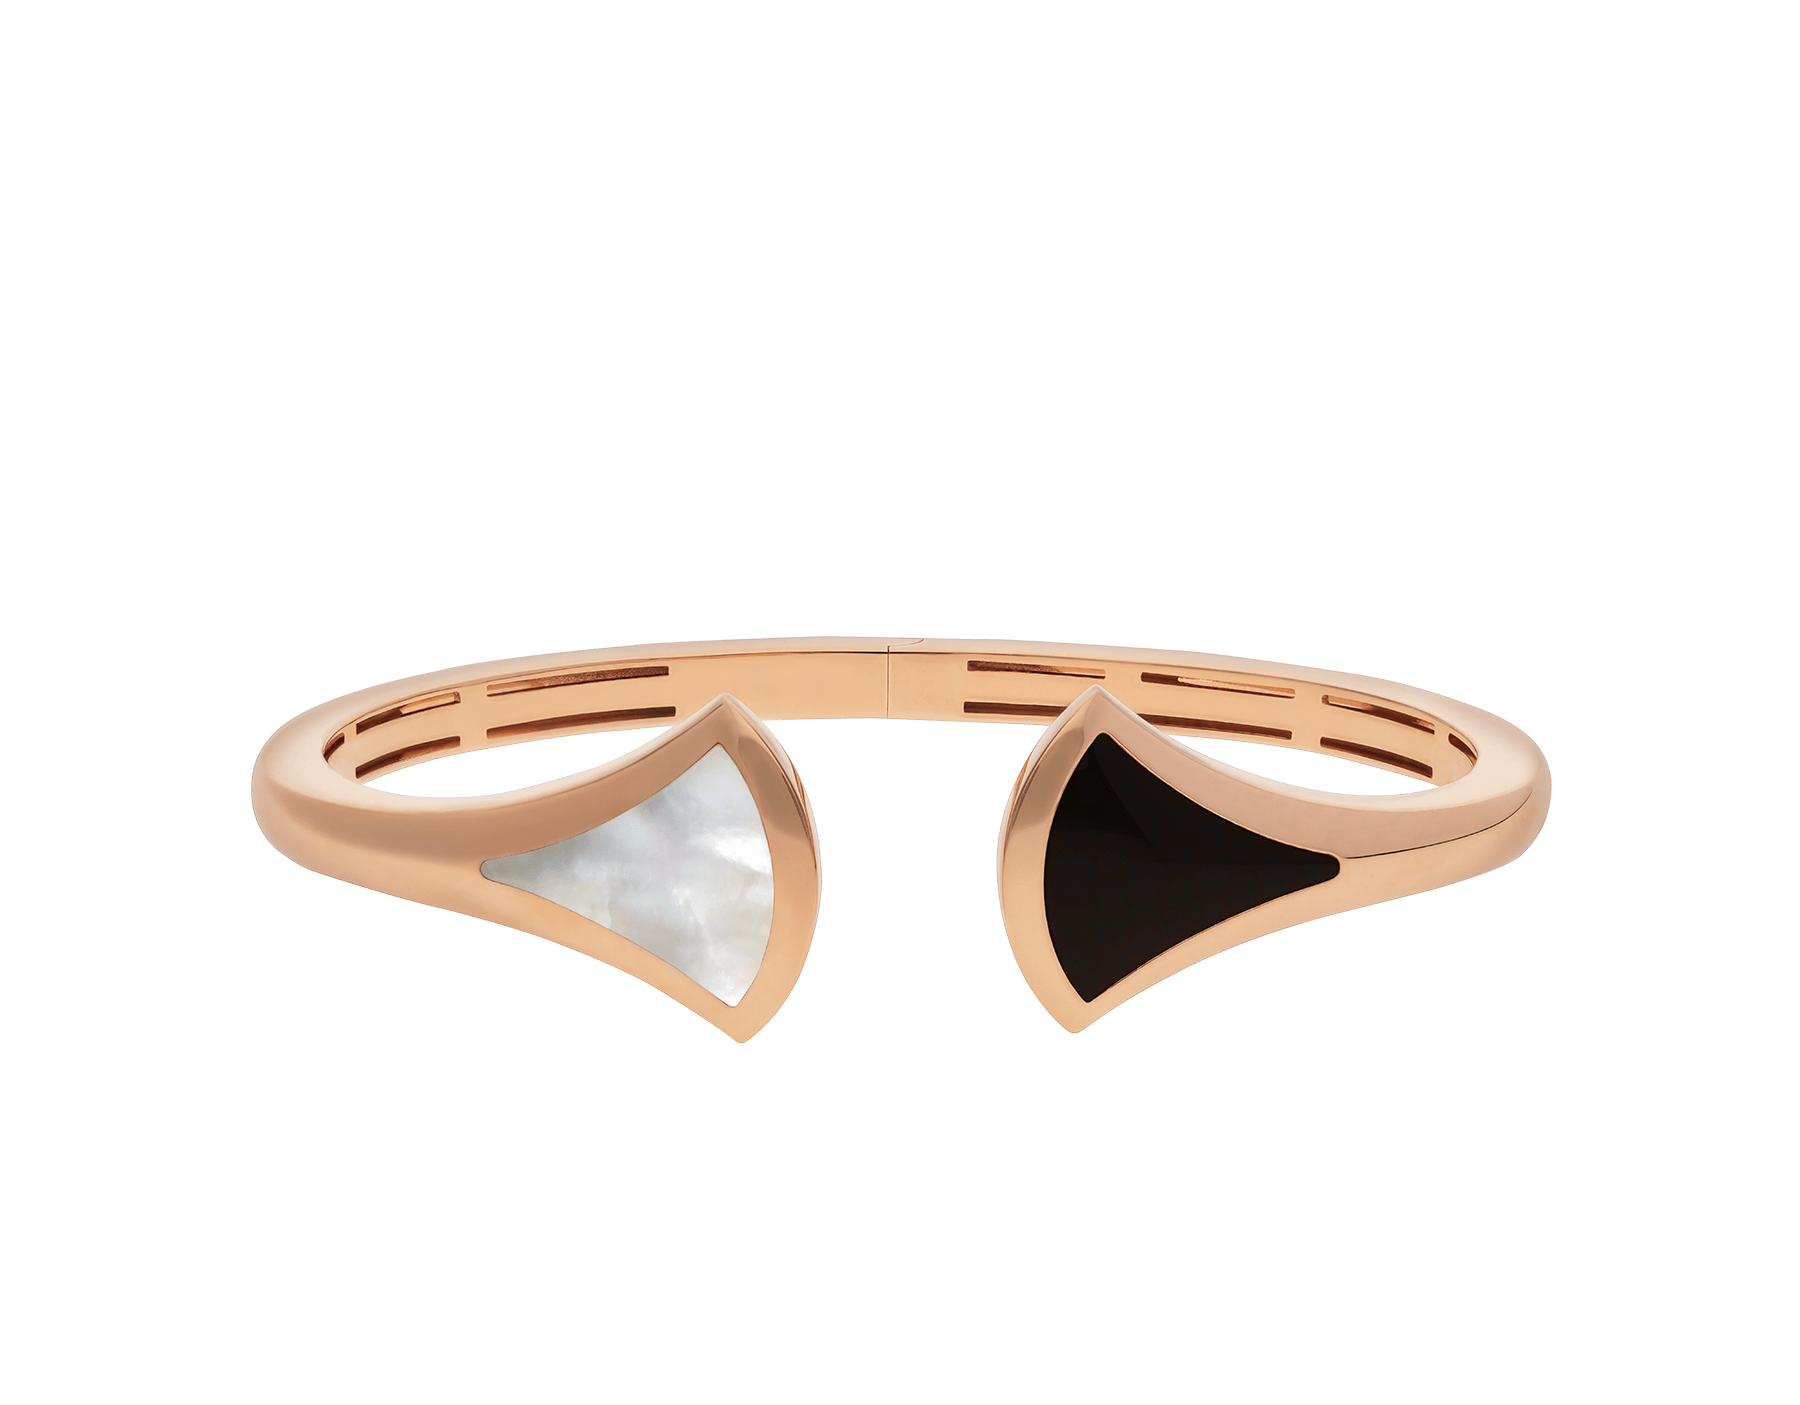 DIVAS' DREAM cuff bracelet in 18 kt rose gold, set with mother-of-pearl and onyx elements. BR857323 image 2